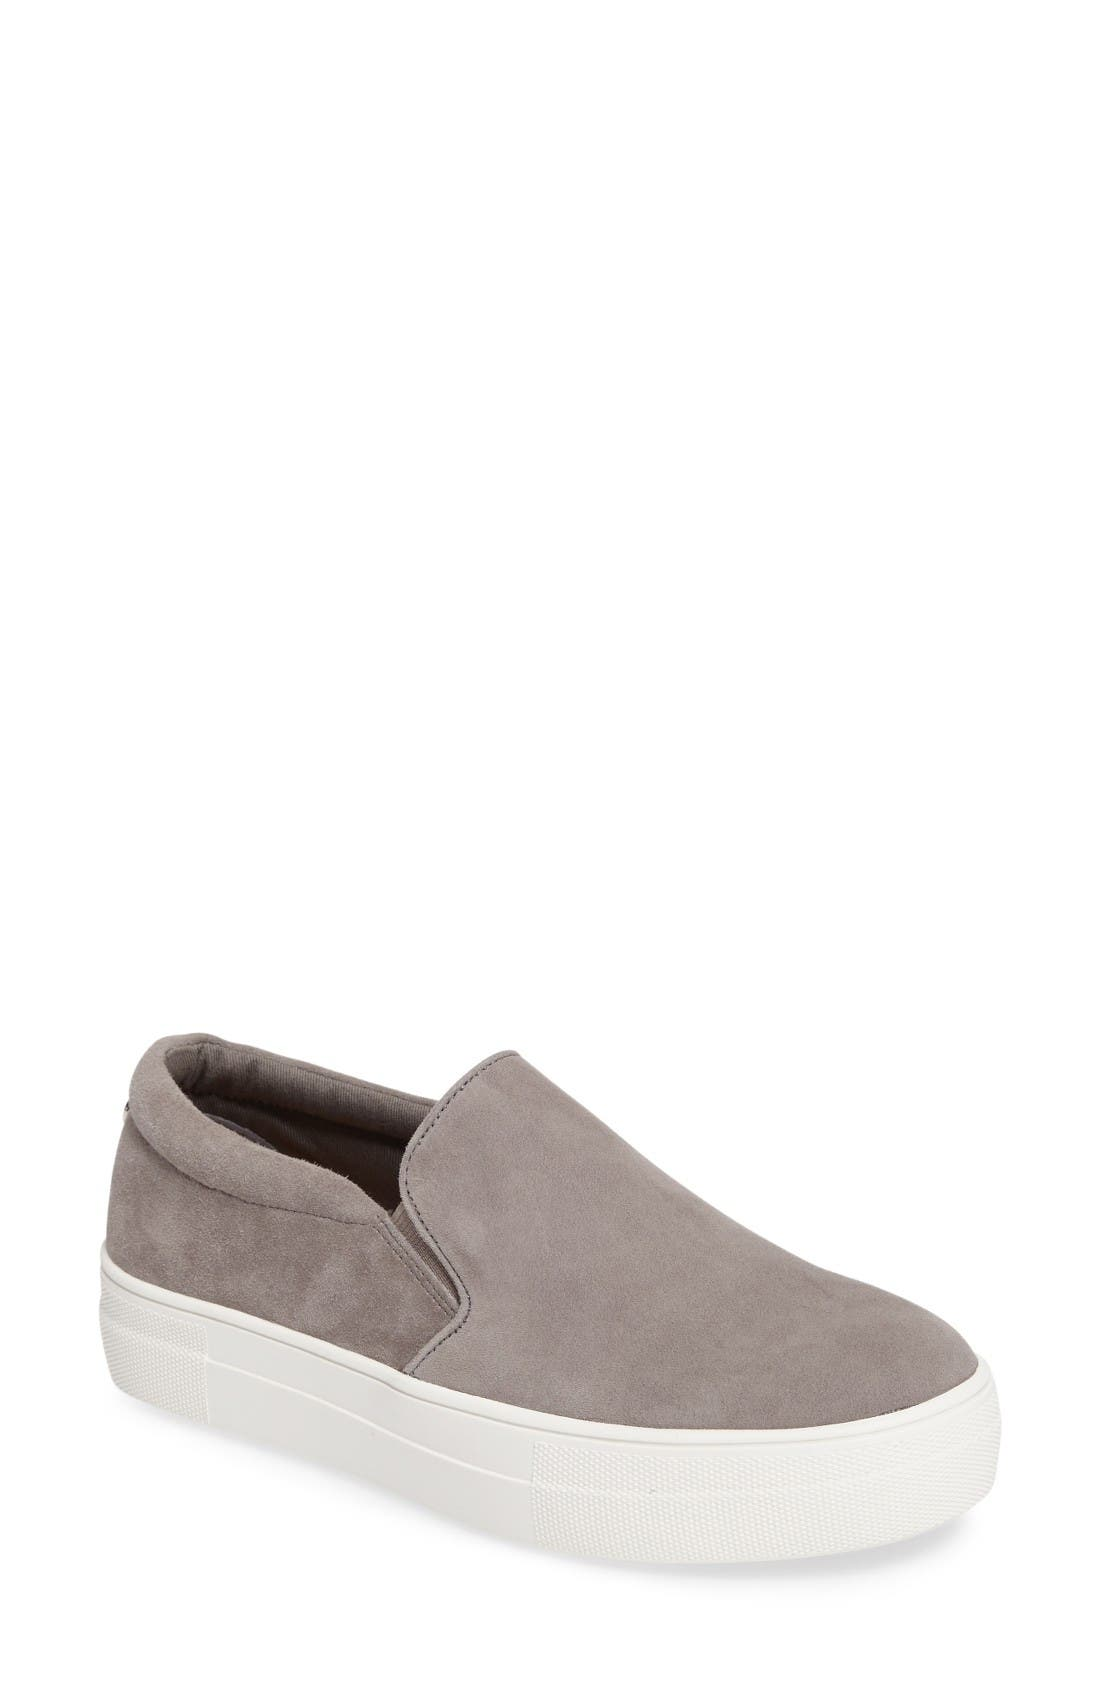 Gills Platform Slip-On Sneaker,                             Main thumbnail 1, color,                             Grey Suede